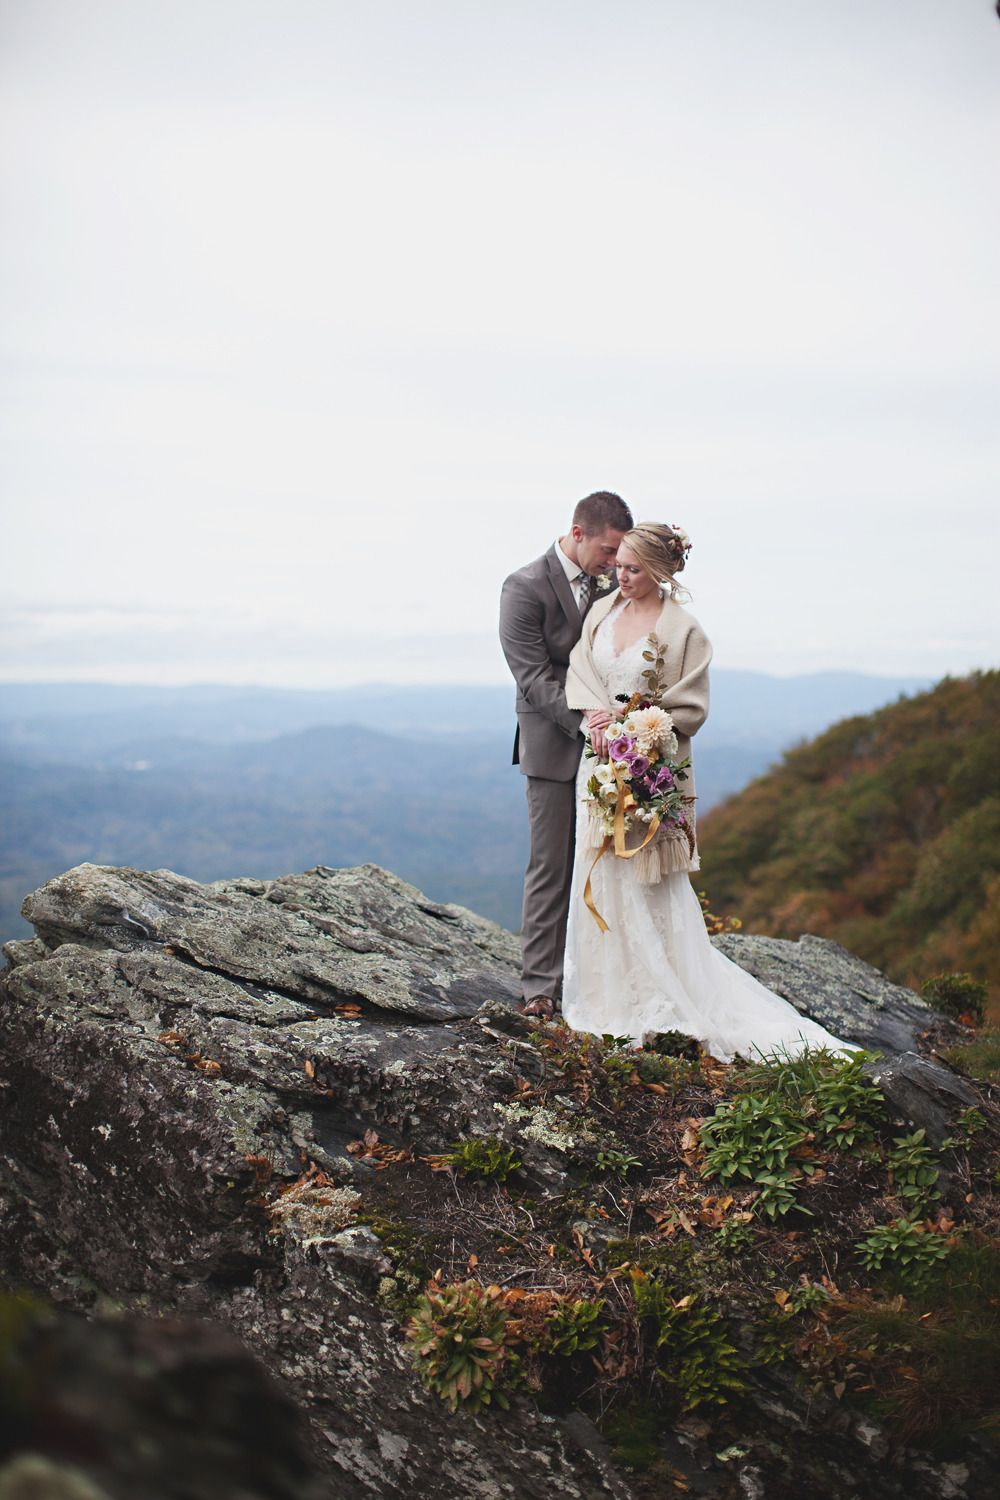 Breath-taking Mountain Wedding Photo Ideas